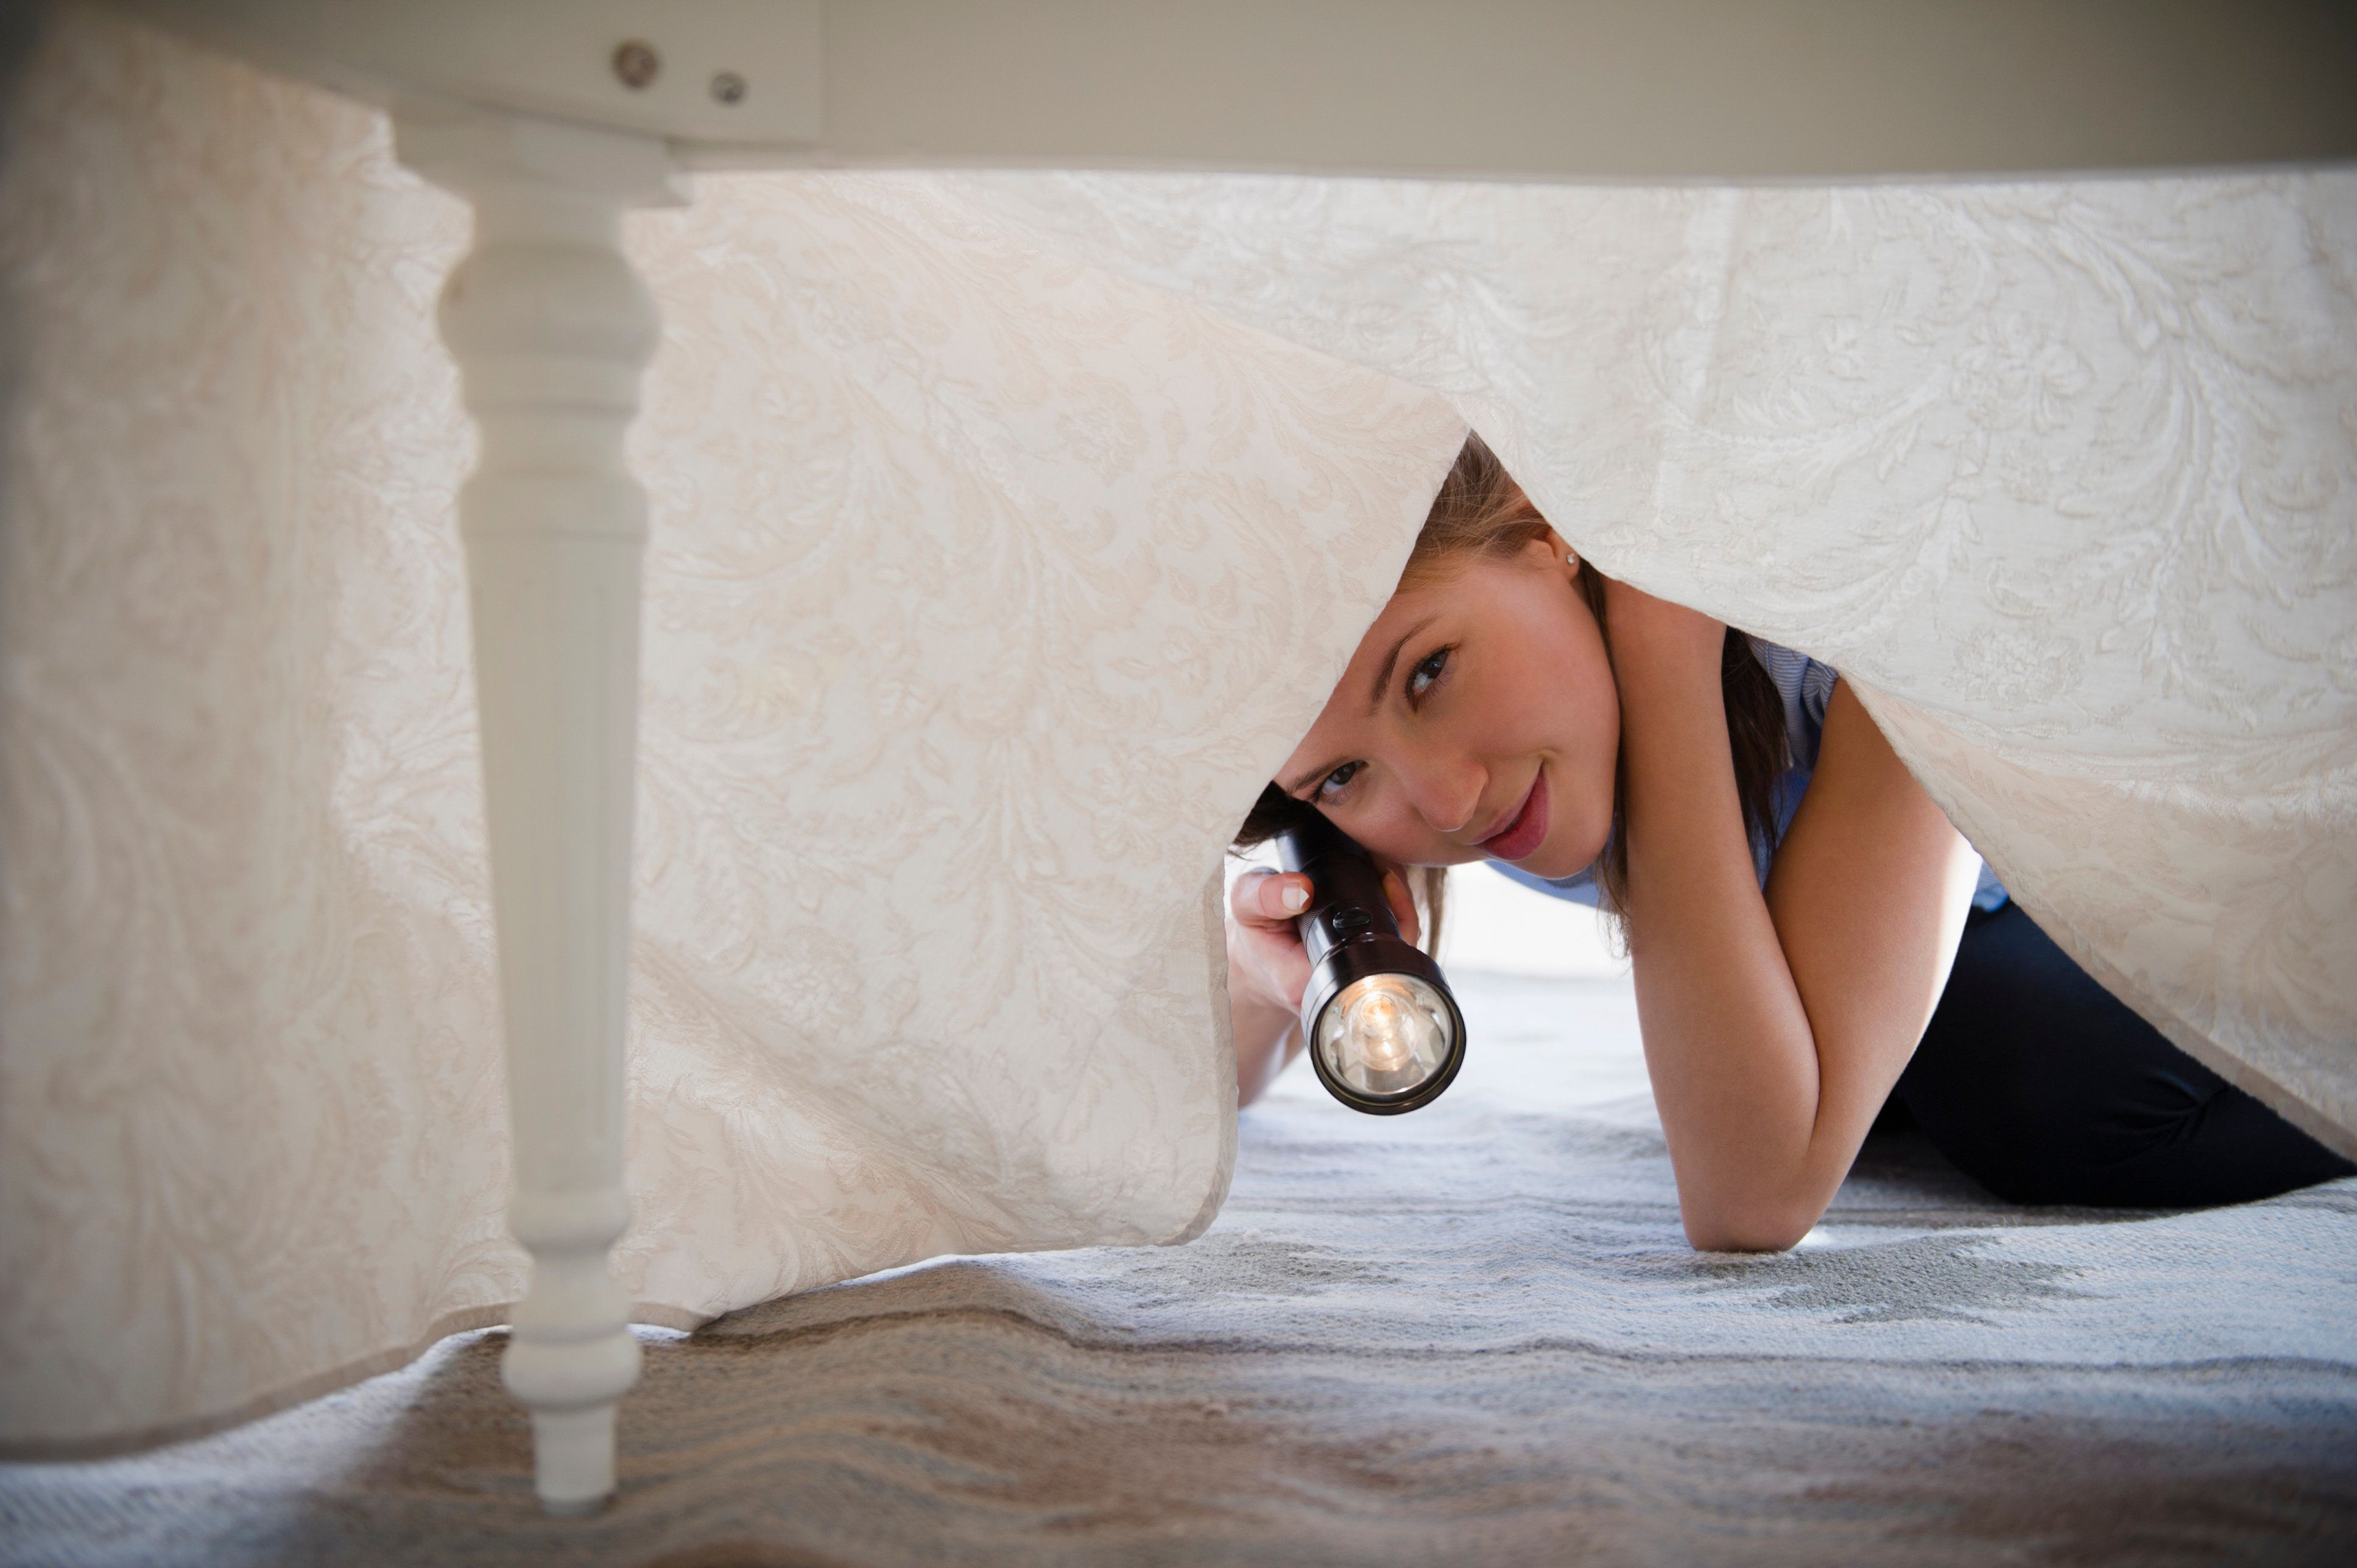 USA, New Jersey, Jersey City, Woman with flashlight looking under bed